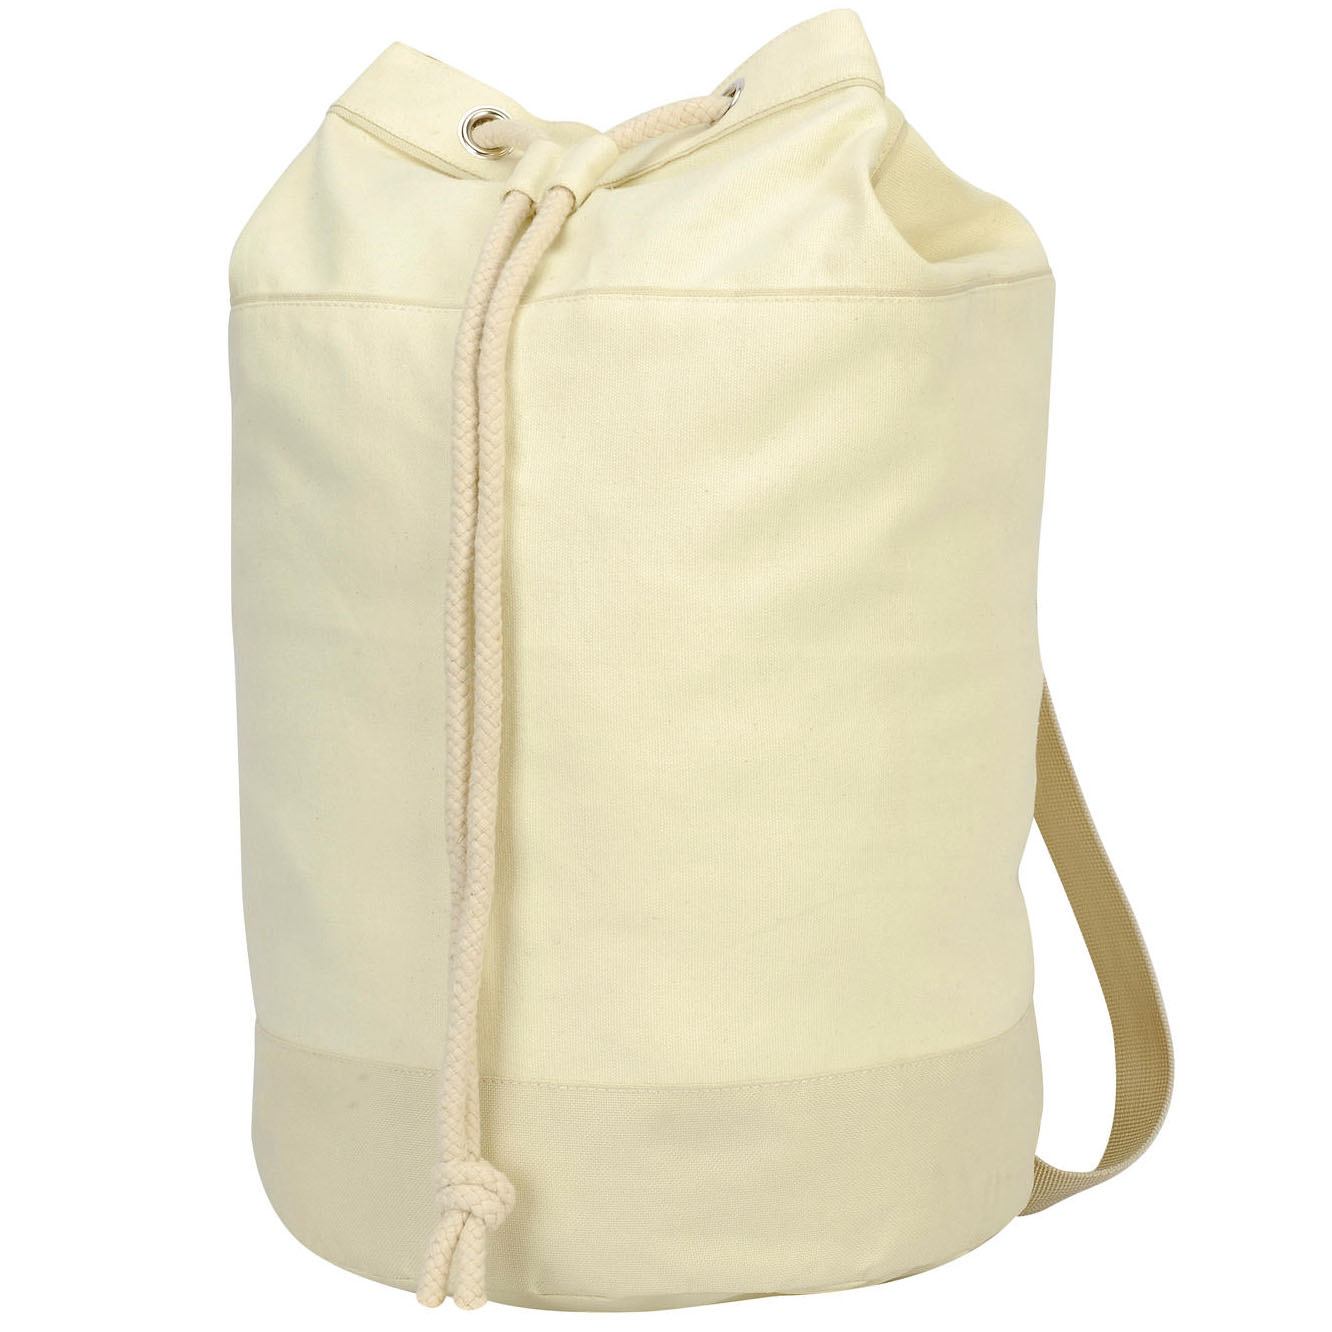 Sacca canvas duffle